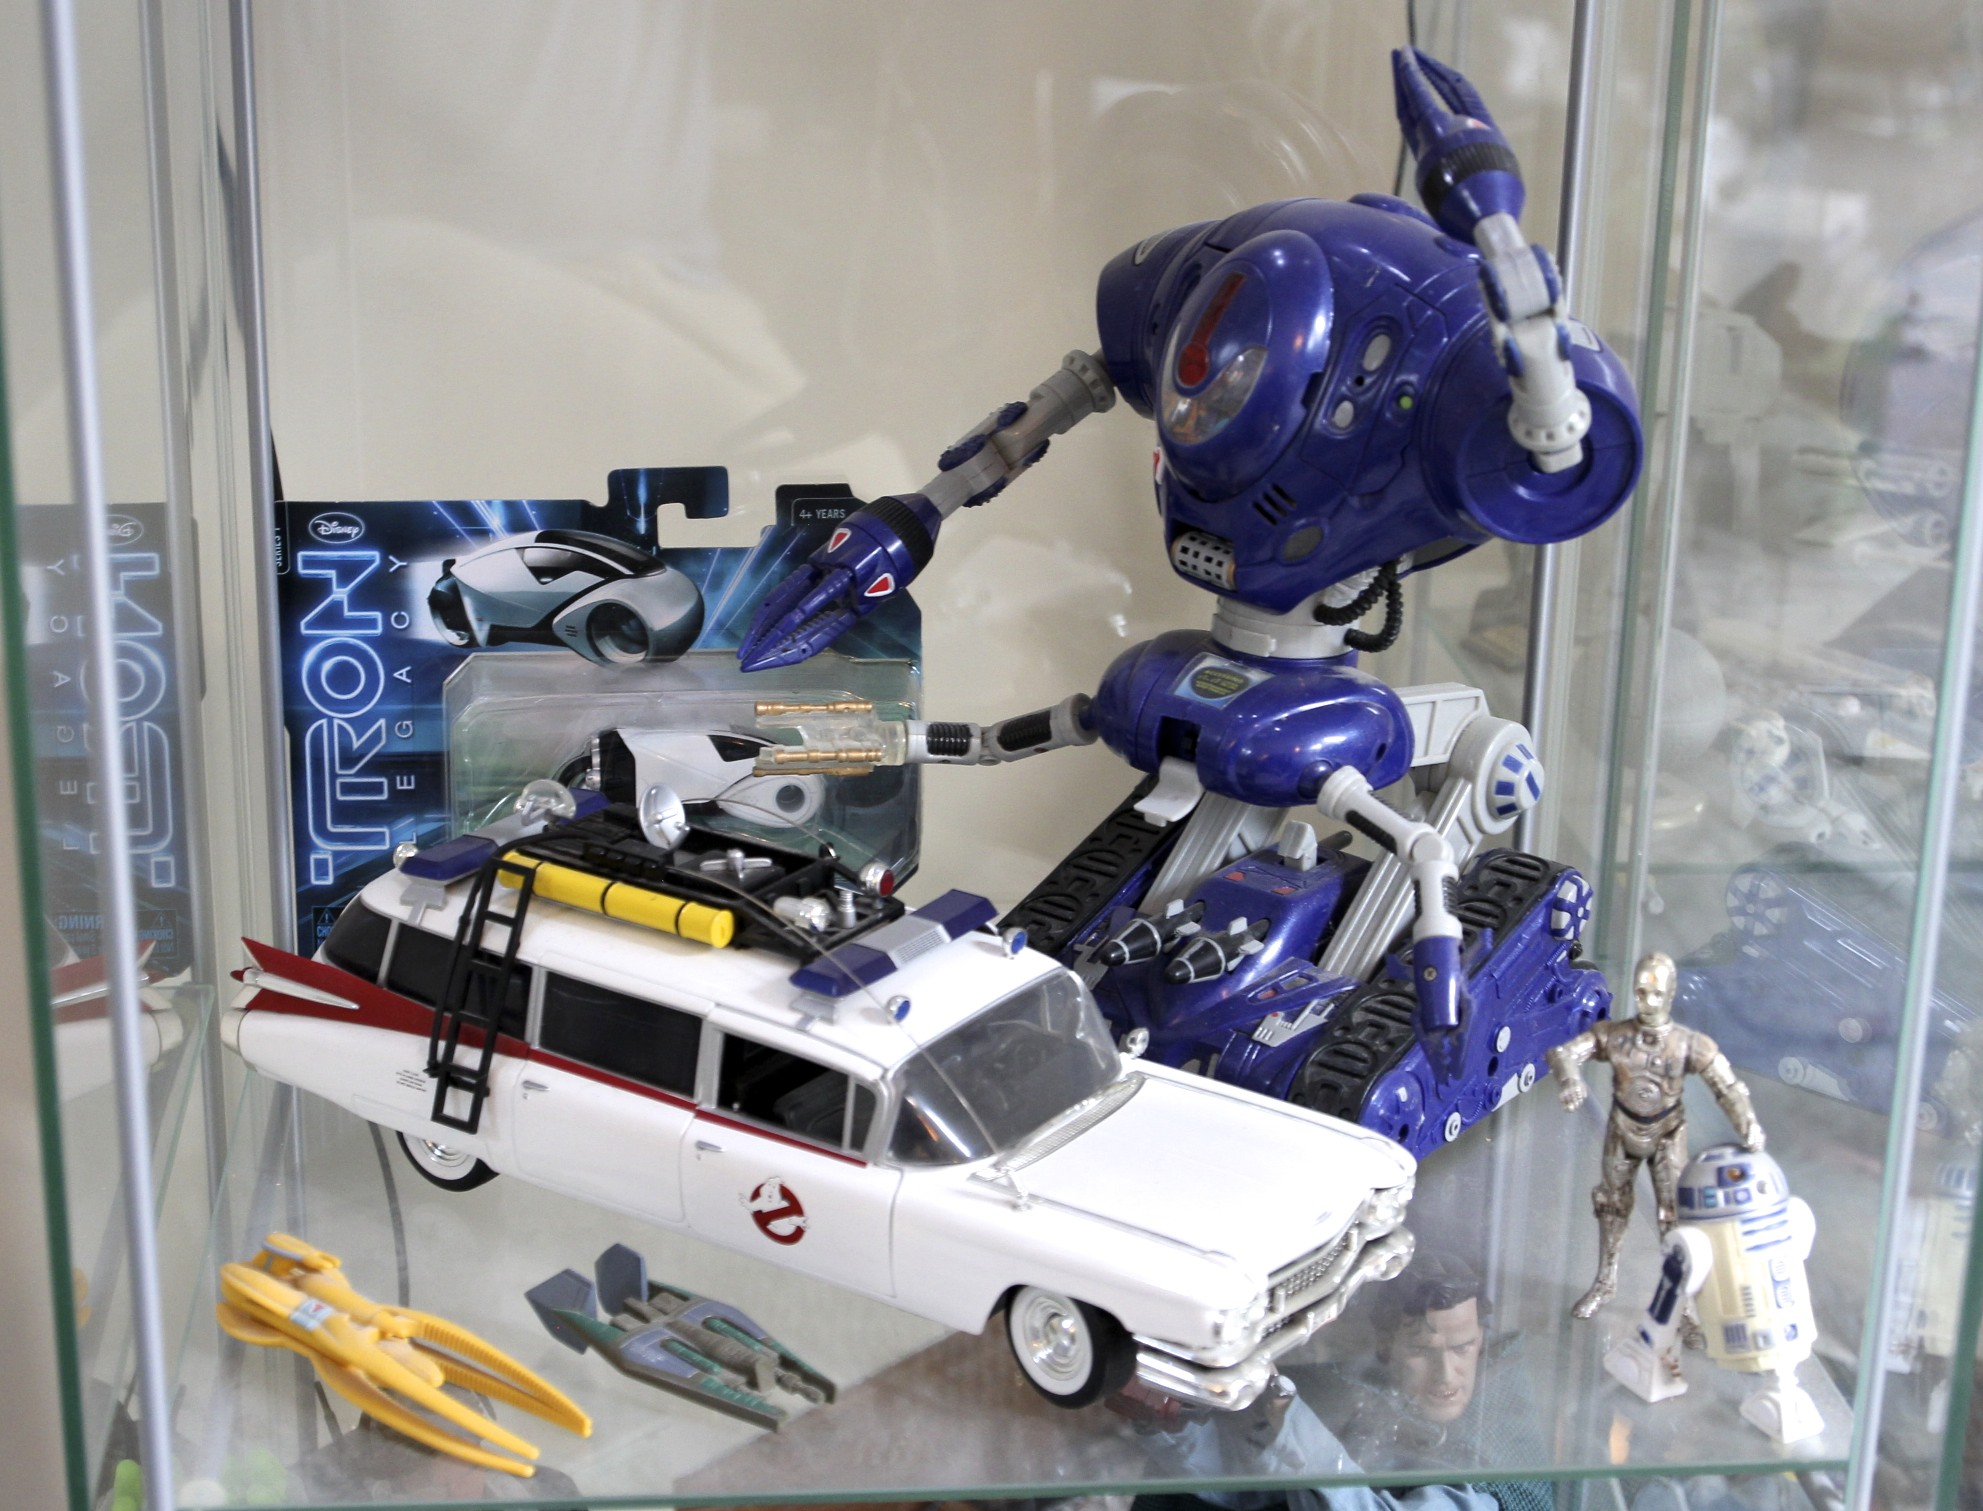 Ghostbusters  ECTO-1,  Lost in Space  Robot,  TRON: Legacy  Light Cycle,  Babylon 5  Spacecraft, C-3PO and R2-D2.